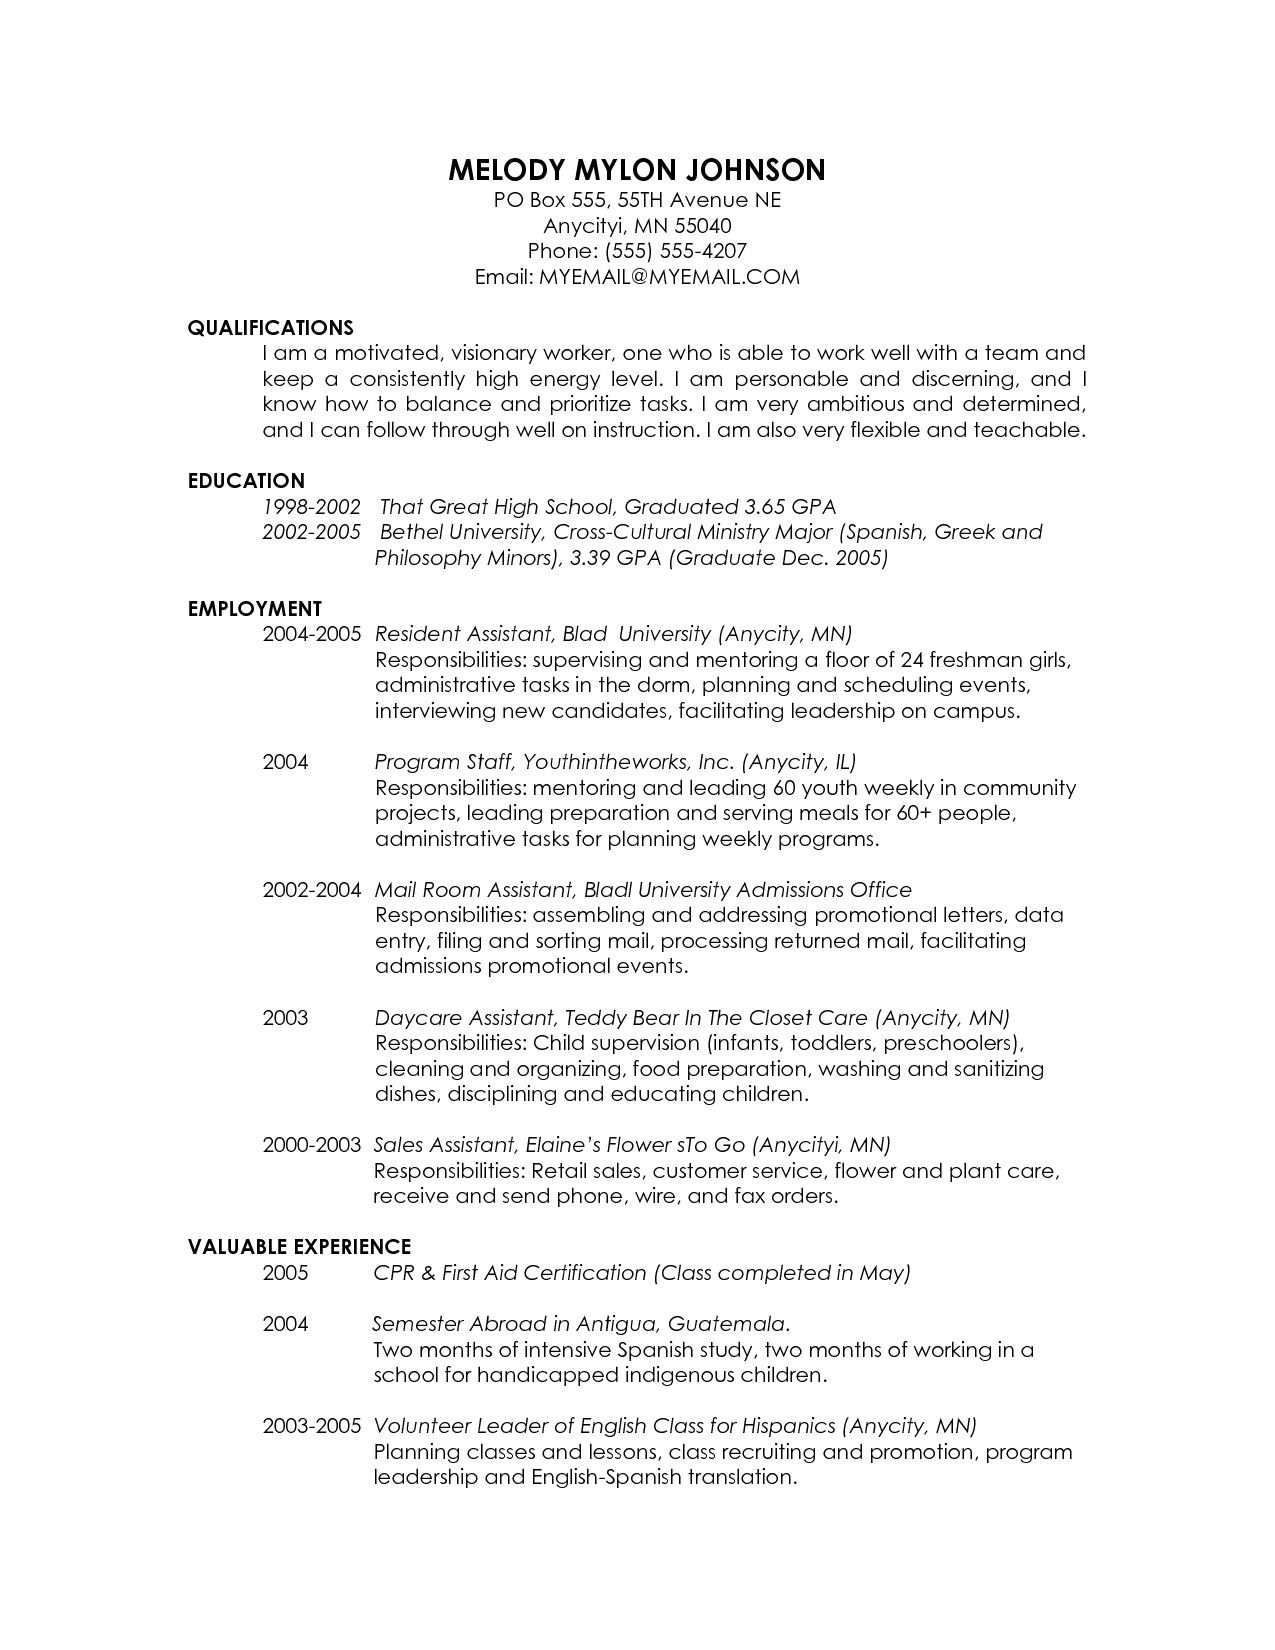 Resume Templates Grad School Resume for graduate school